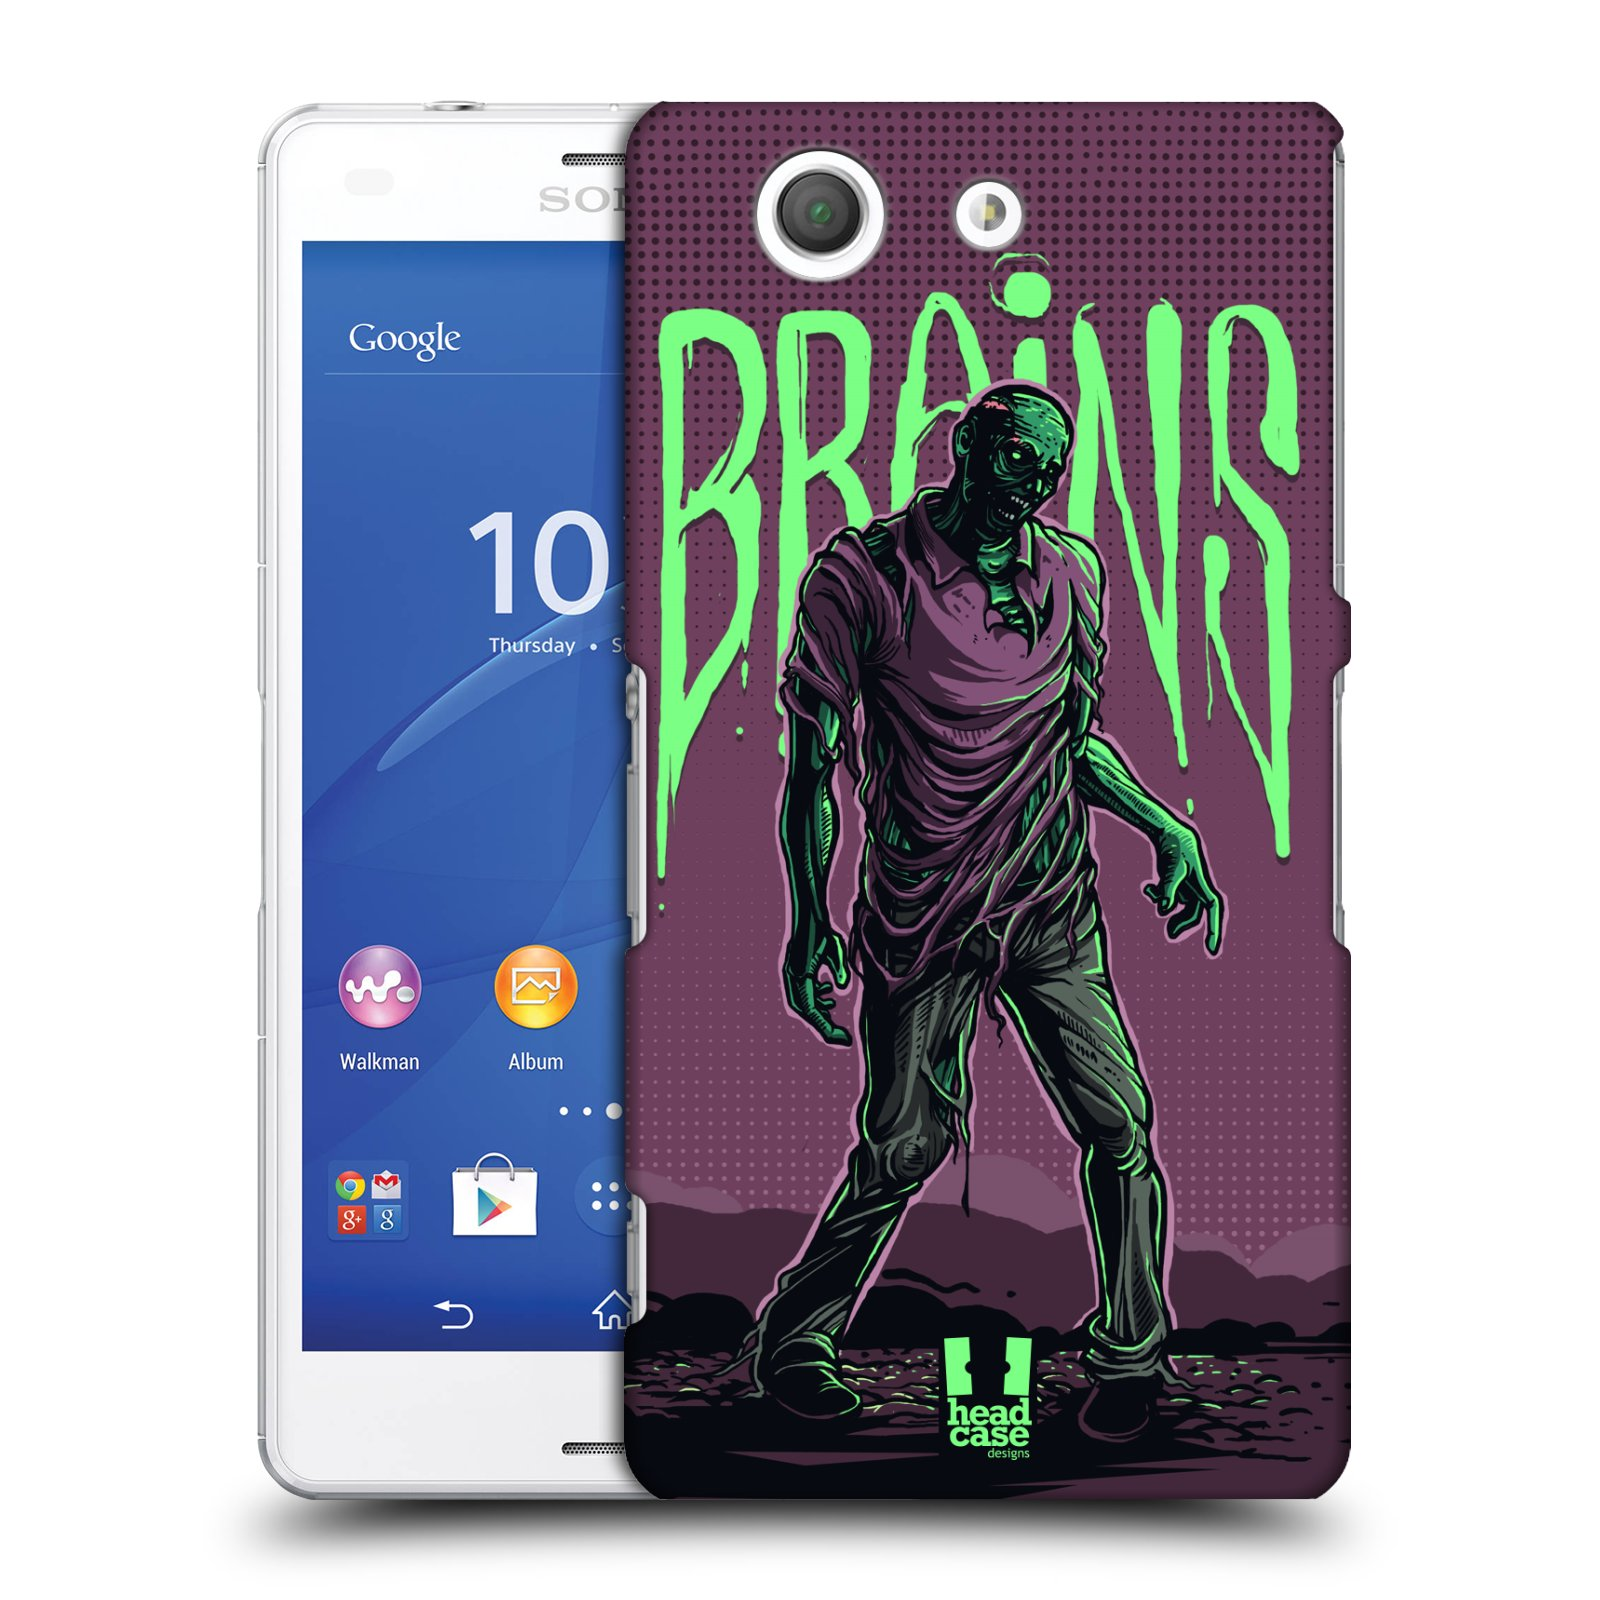 HEAD CASE DESIGNS ZOMBIES CASE COVER FOR SONY XPERIA Z3 COMPACT D5803